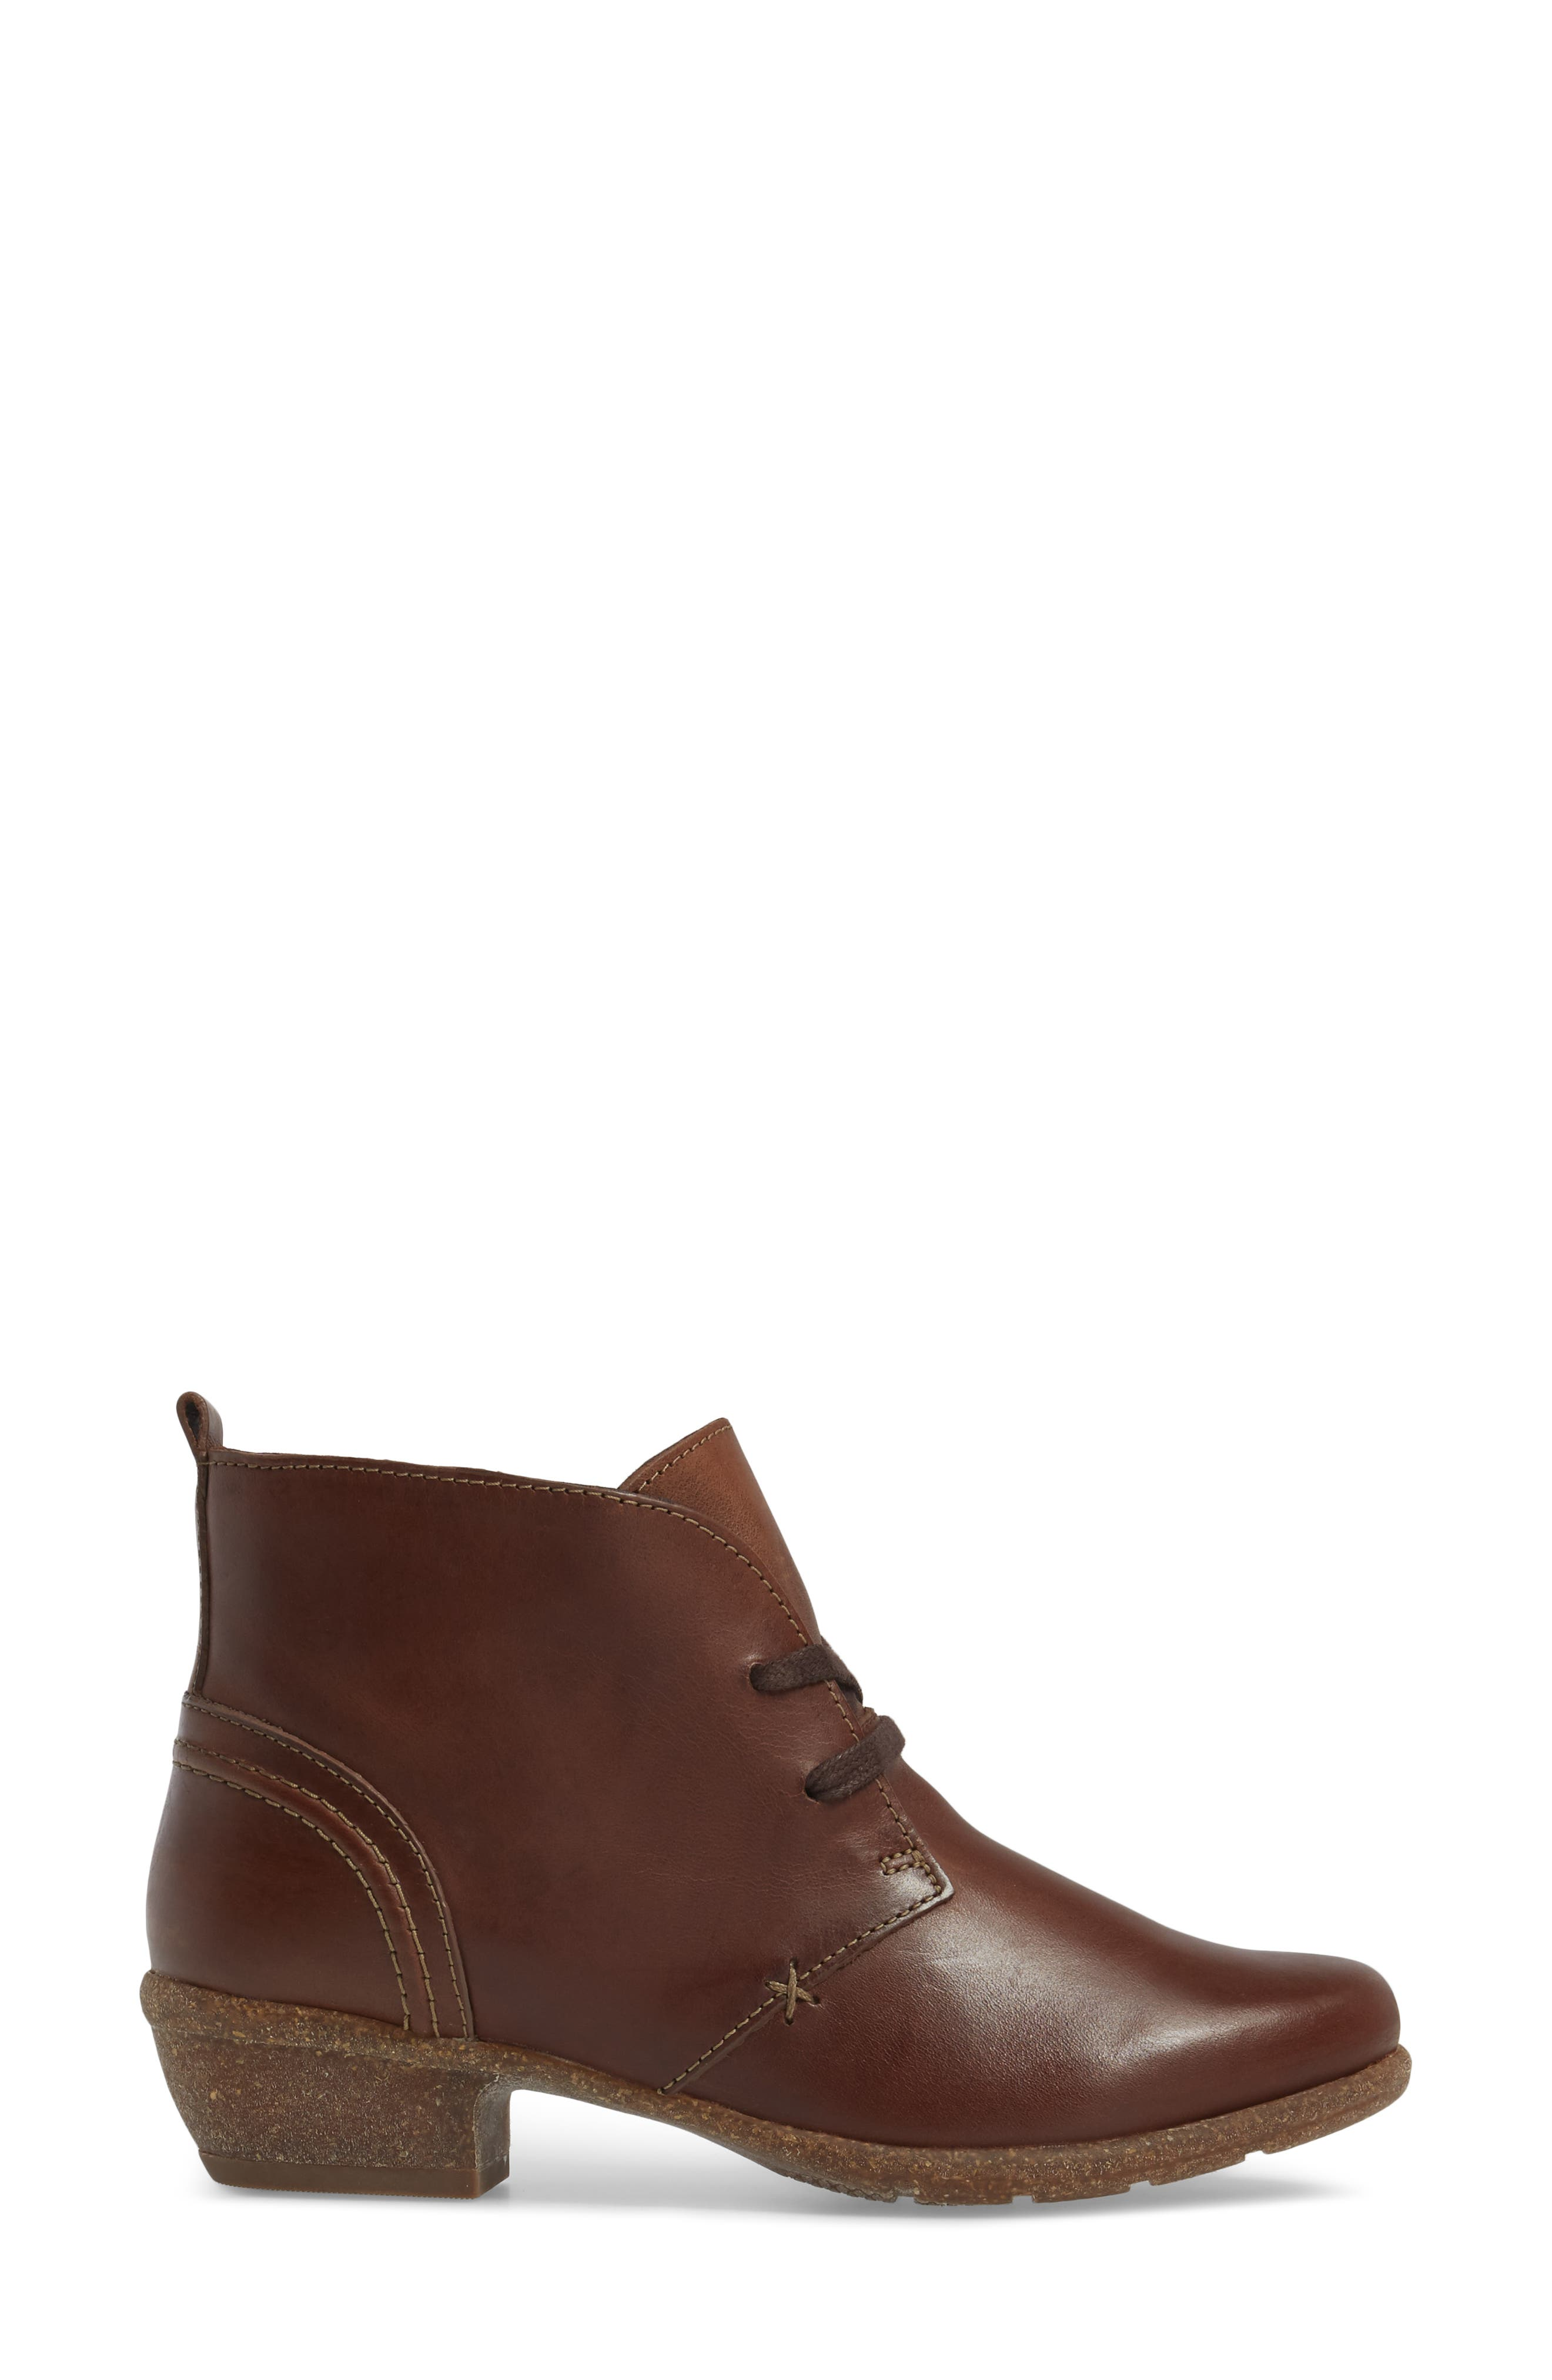 Wilrose Sage Bootie,                             Alternate thumbnail 3, color,                             Brown Nubuck Leather